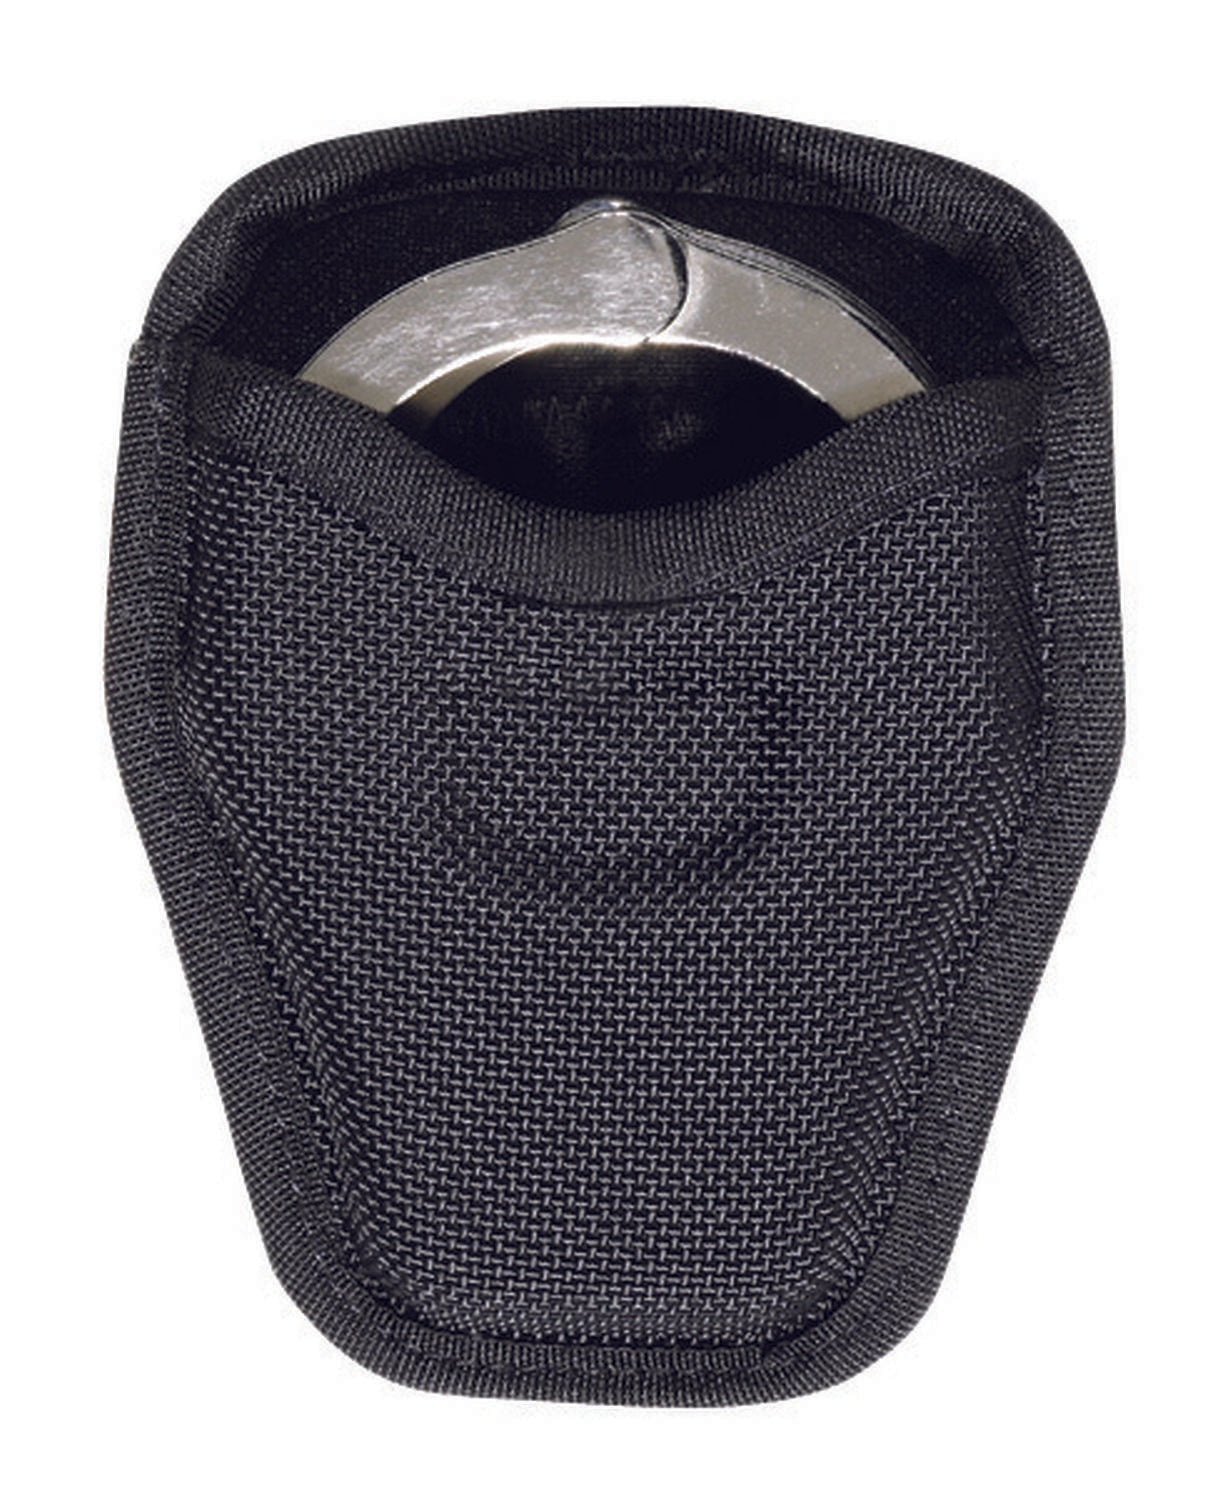 BIANCHI Model 7334 Open Handcuff Case - red-diamond-uniform-police-supply